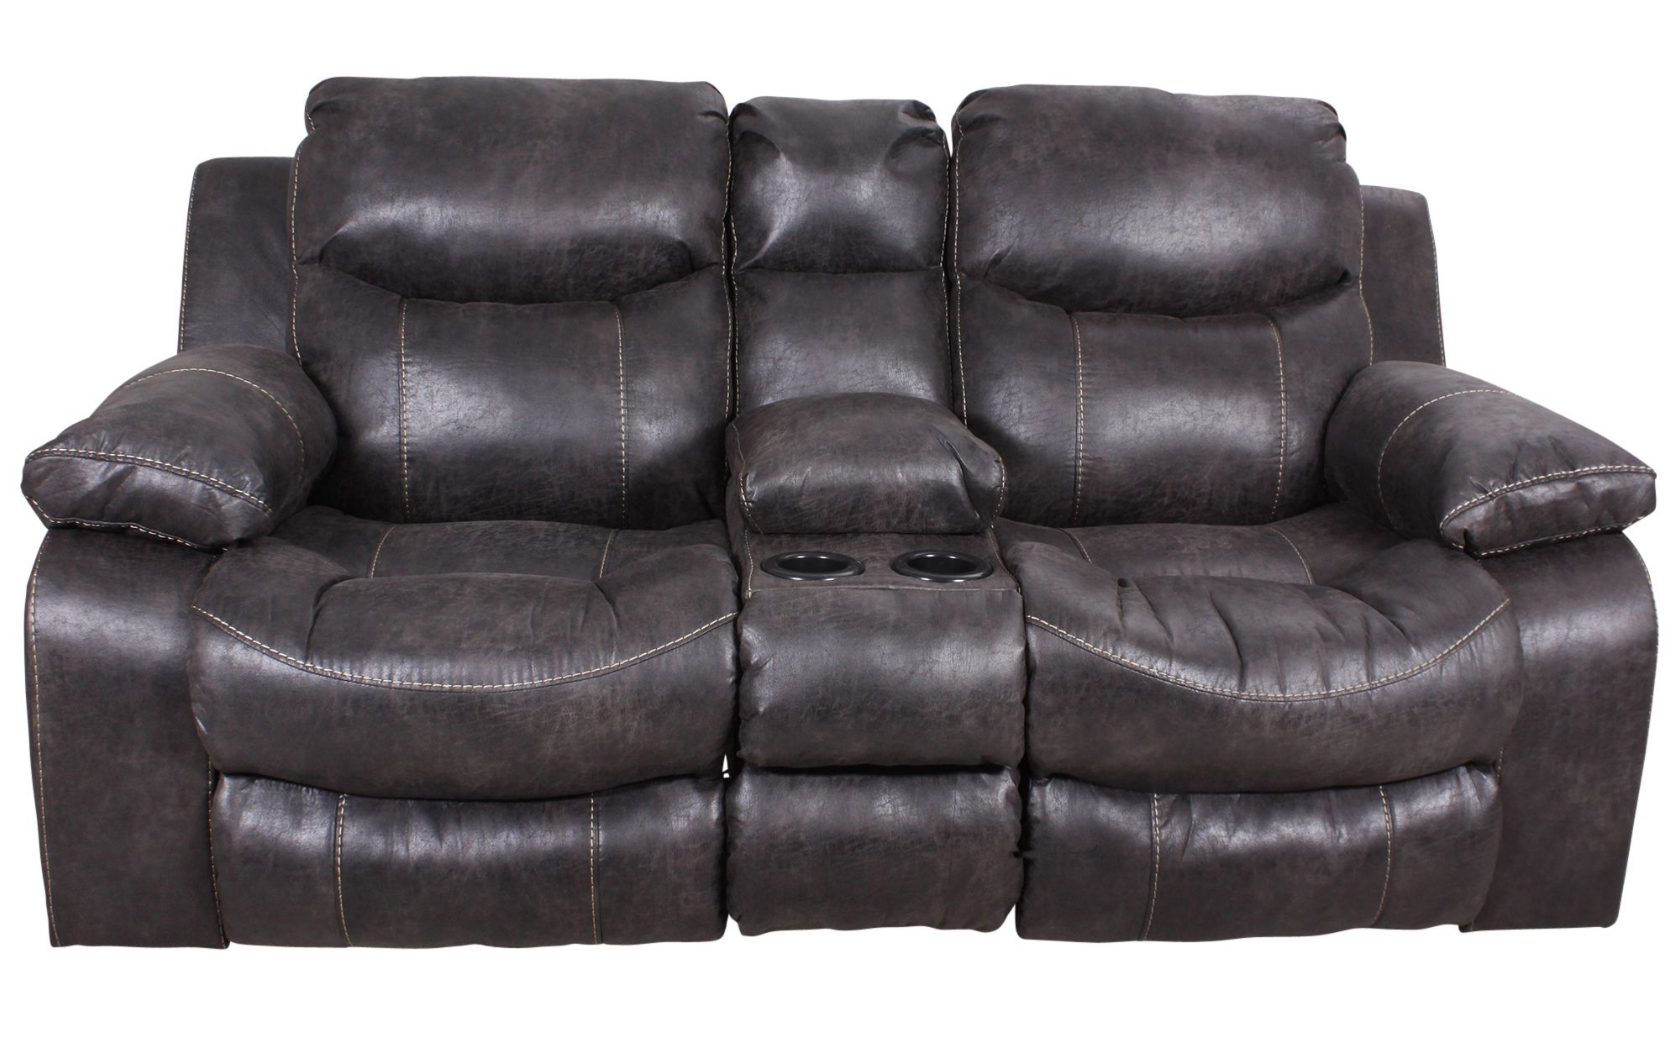 Catnapper leather reclining sofa catnapper nolan leather reclining sofa in chestnut Catnapper loveseat recliner